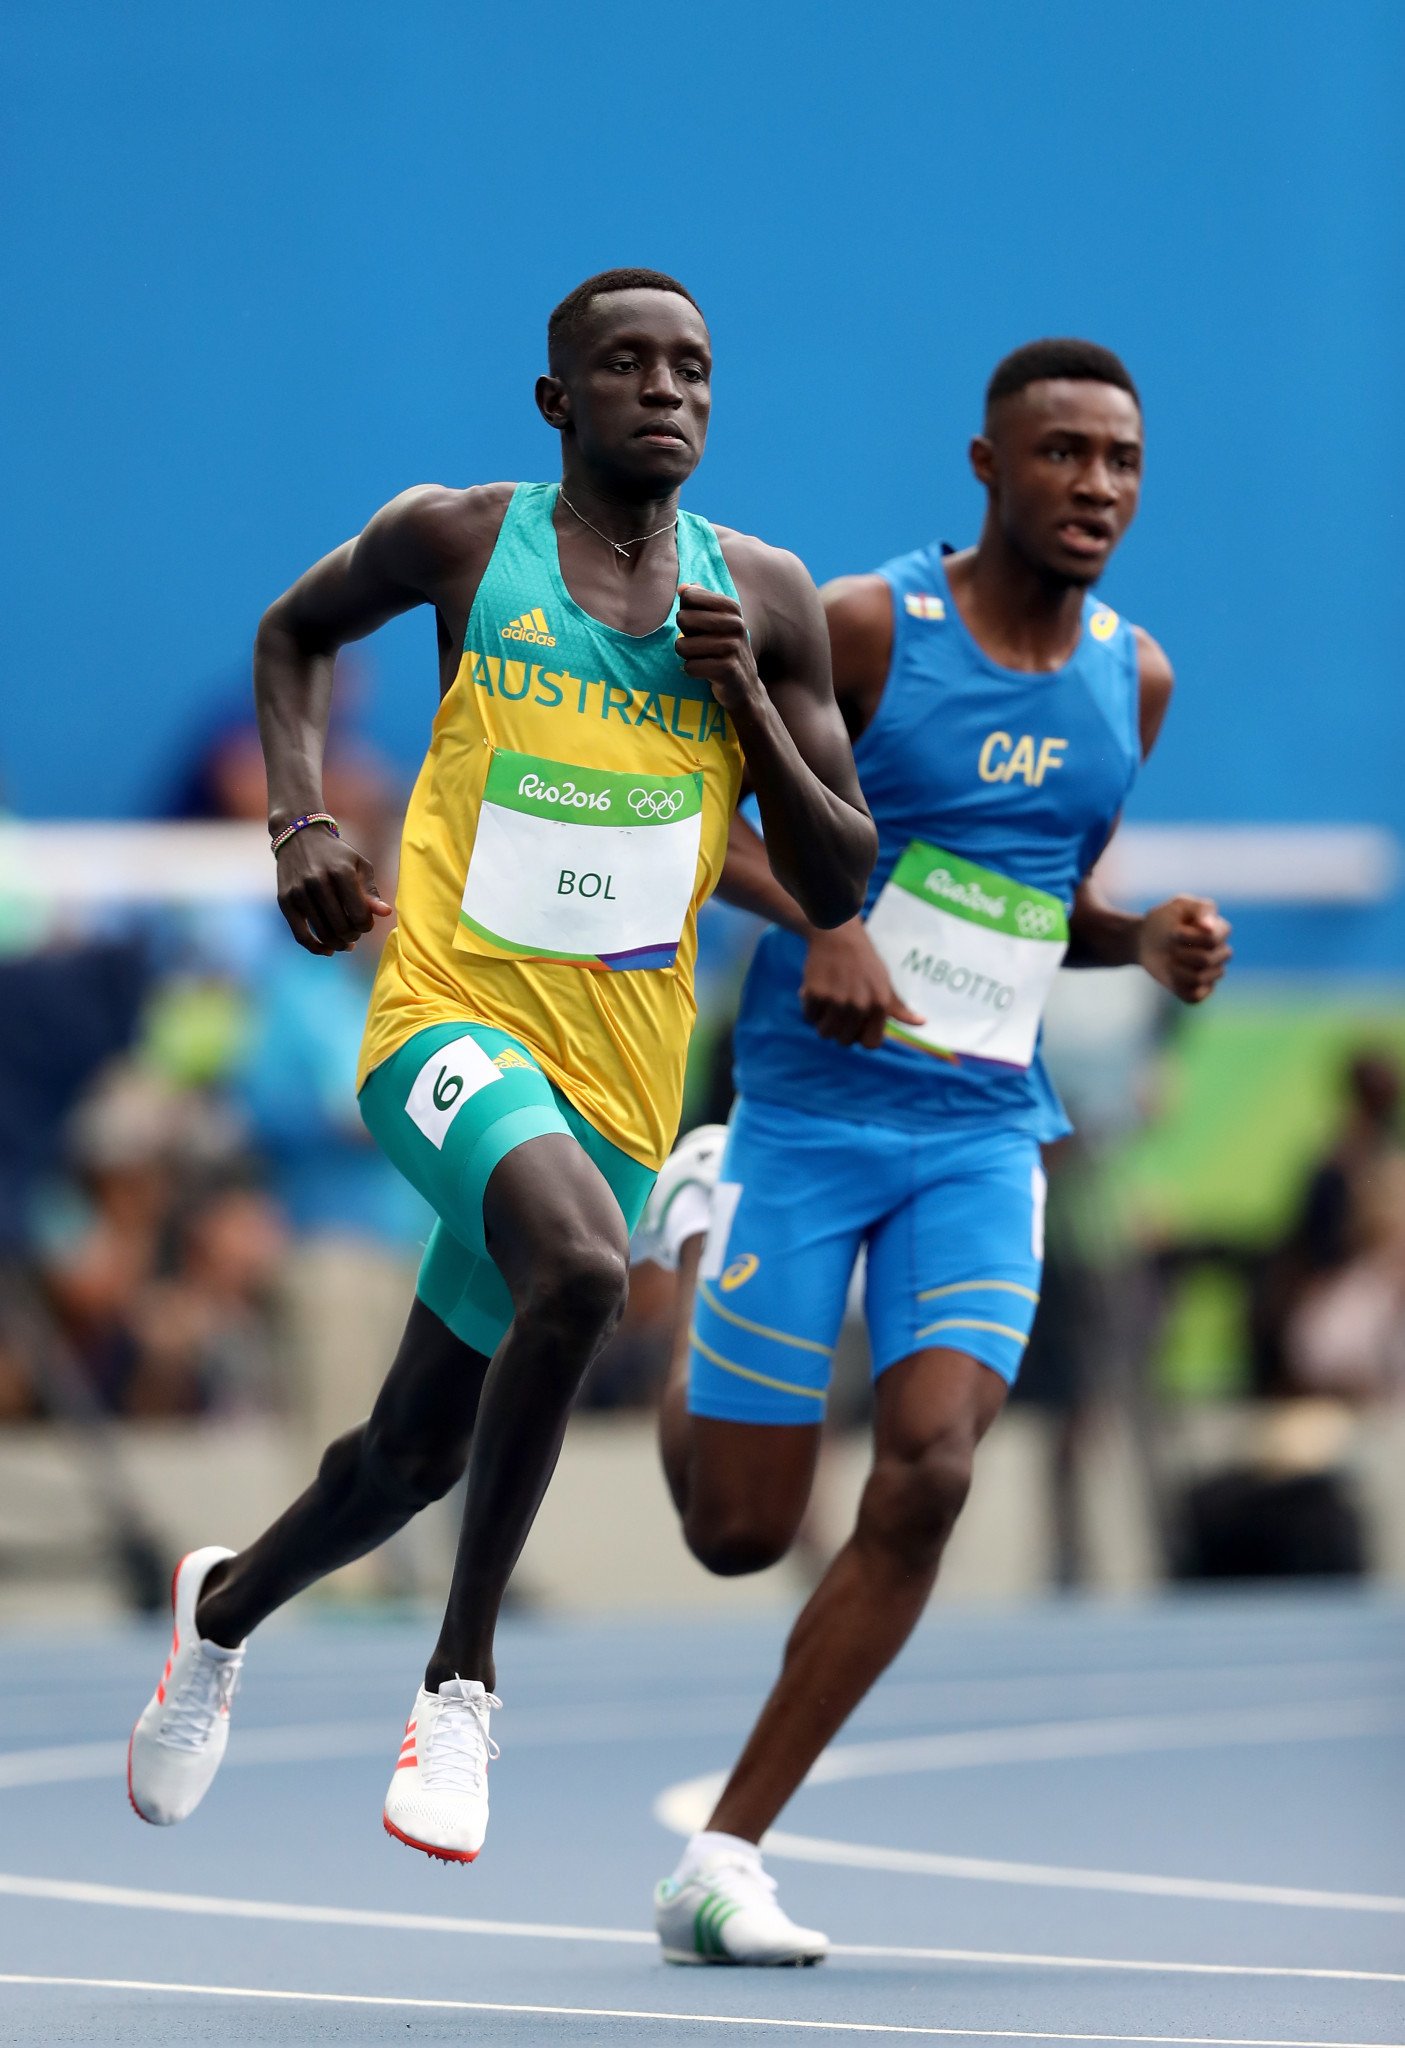 The Central African Republic sent a team of six to the Rio 2016 Olympics ©Getty Images